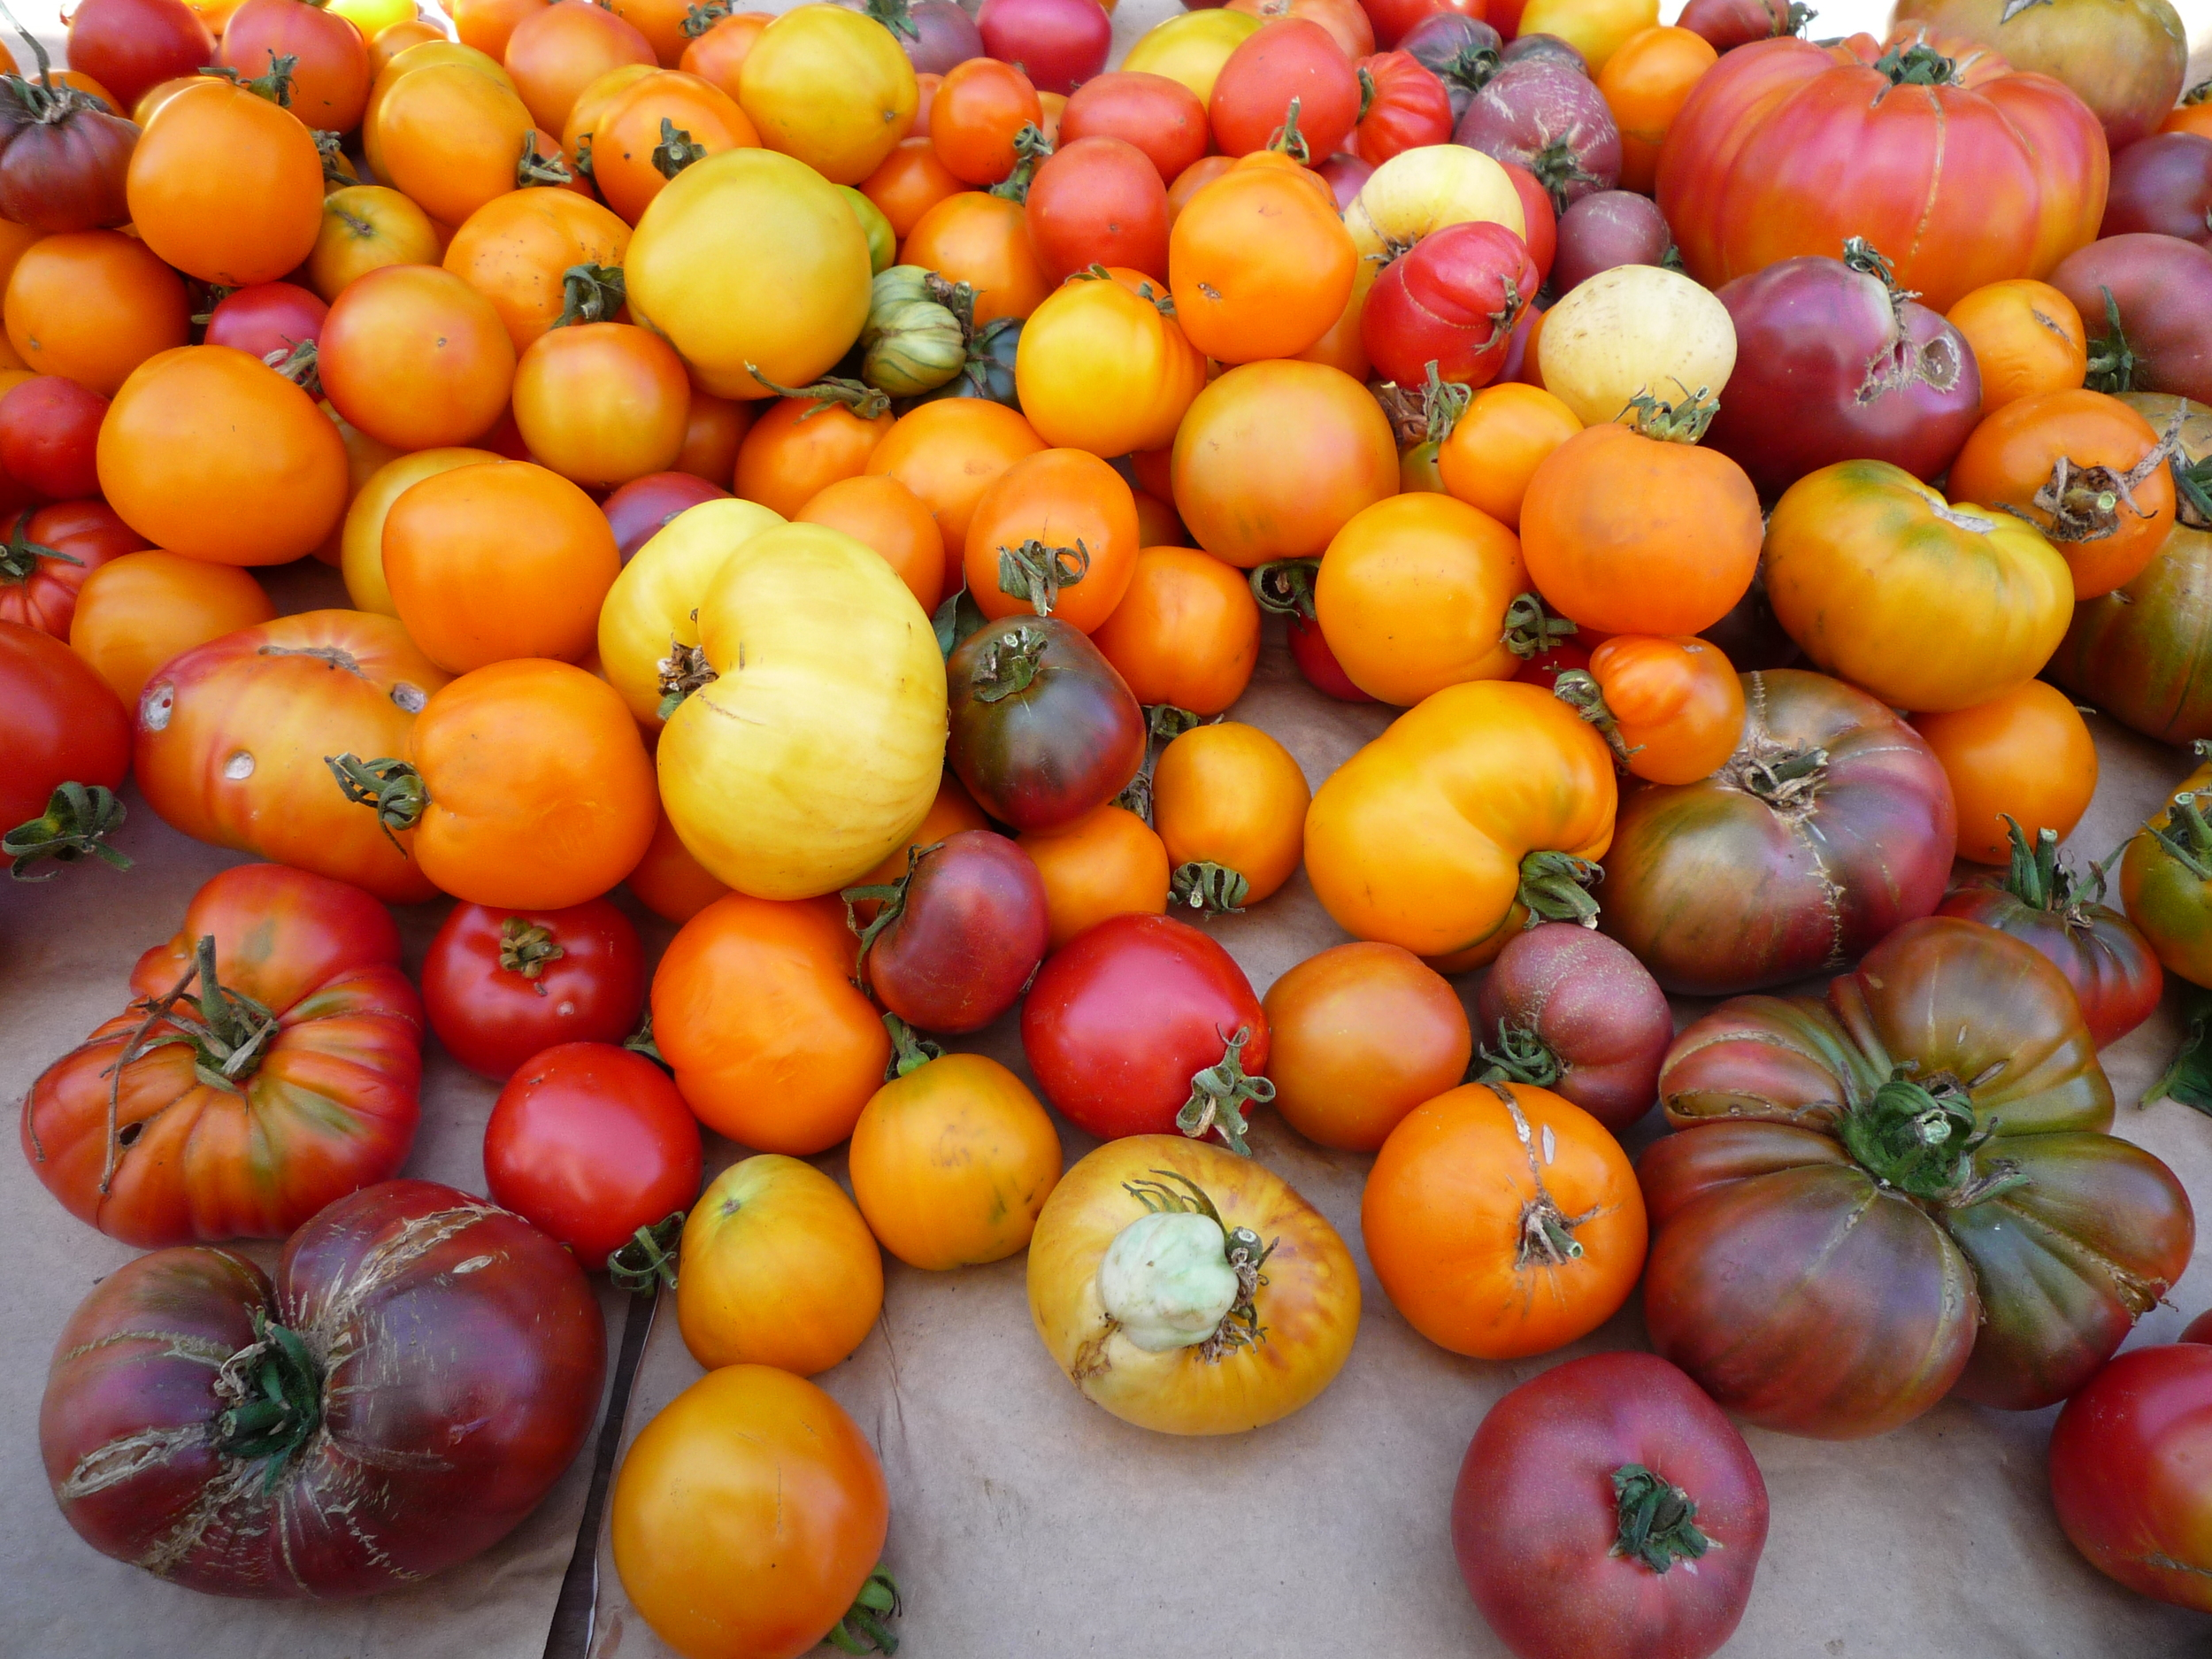 Heirloom cherry tomatoes of all shapes and sizes